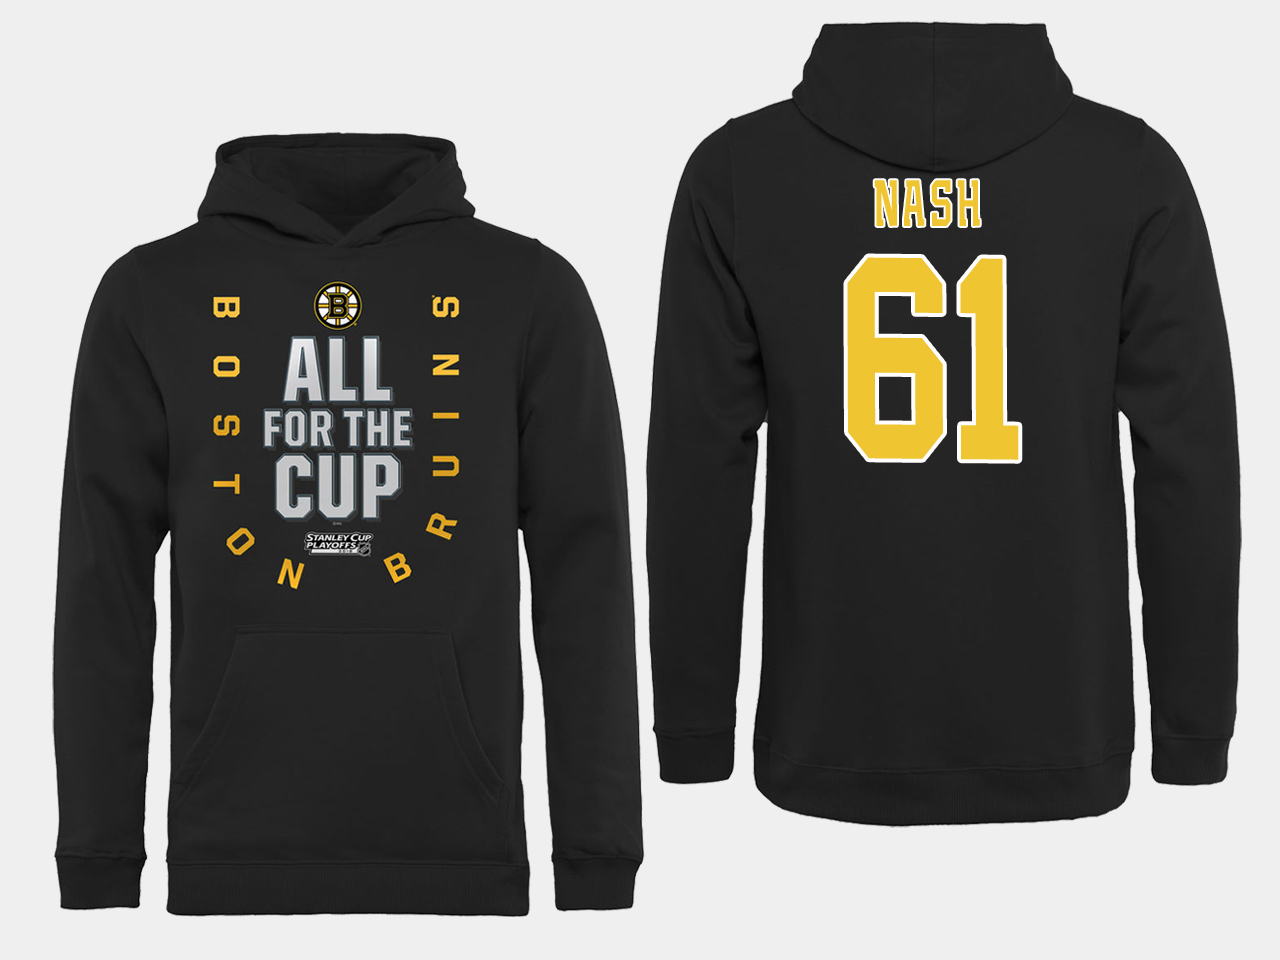 NHL Men Boston Bruins 61 Nash Black All for the Cup Hoodie